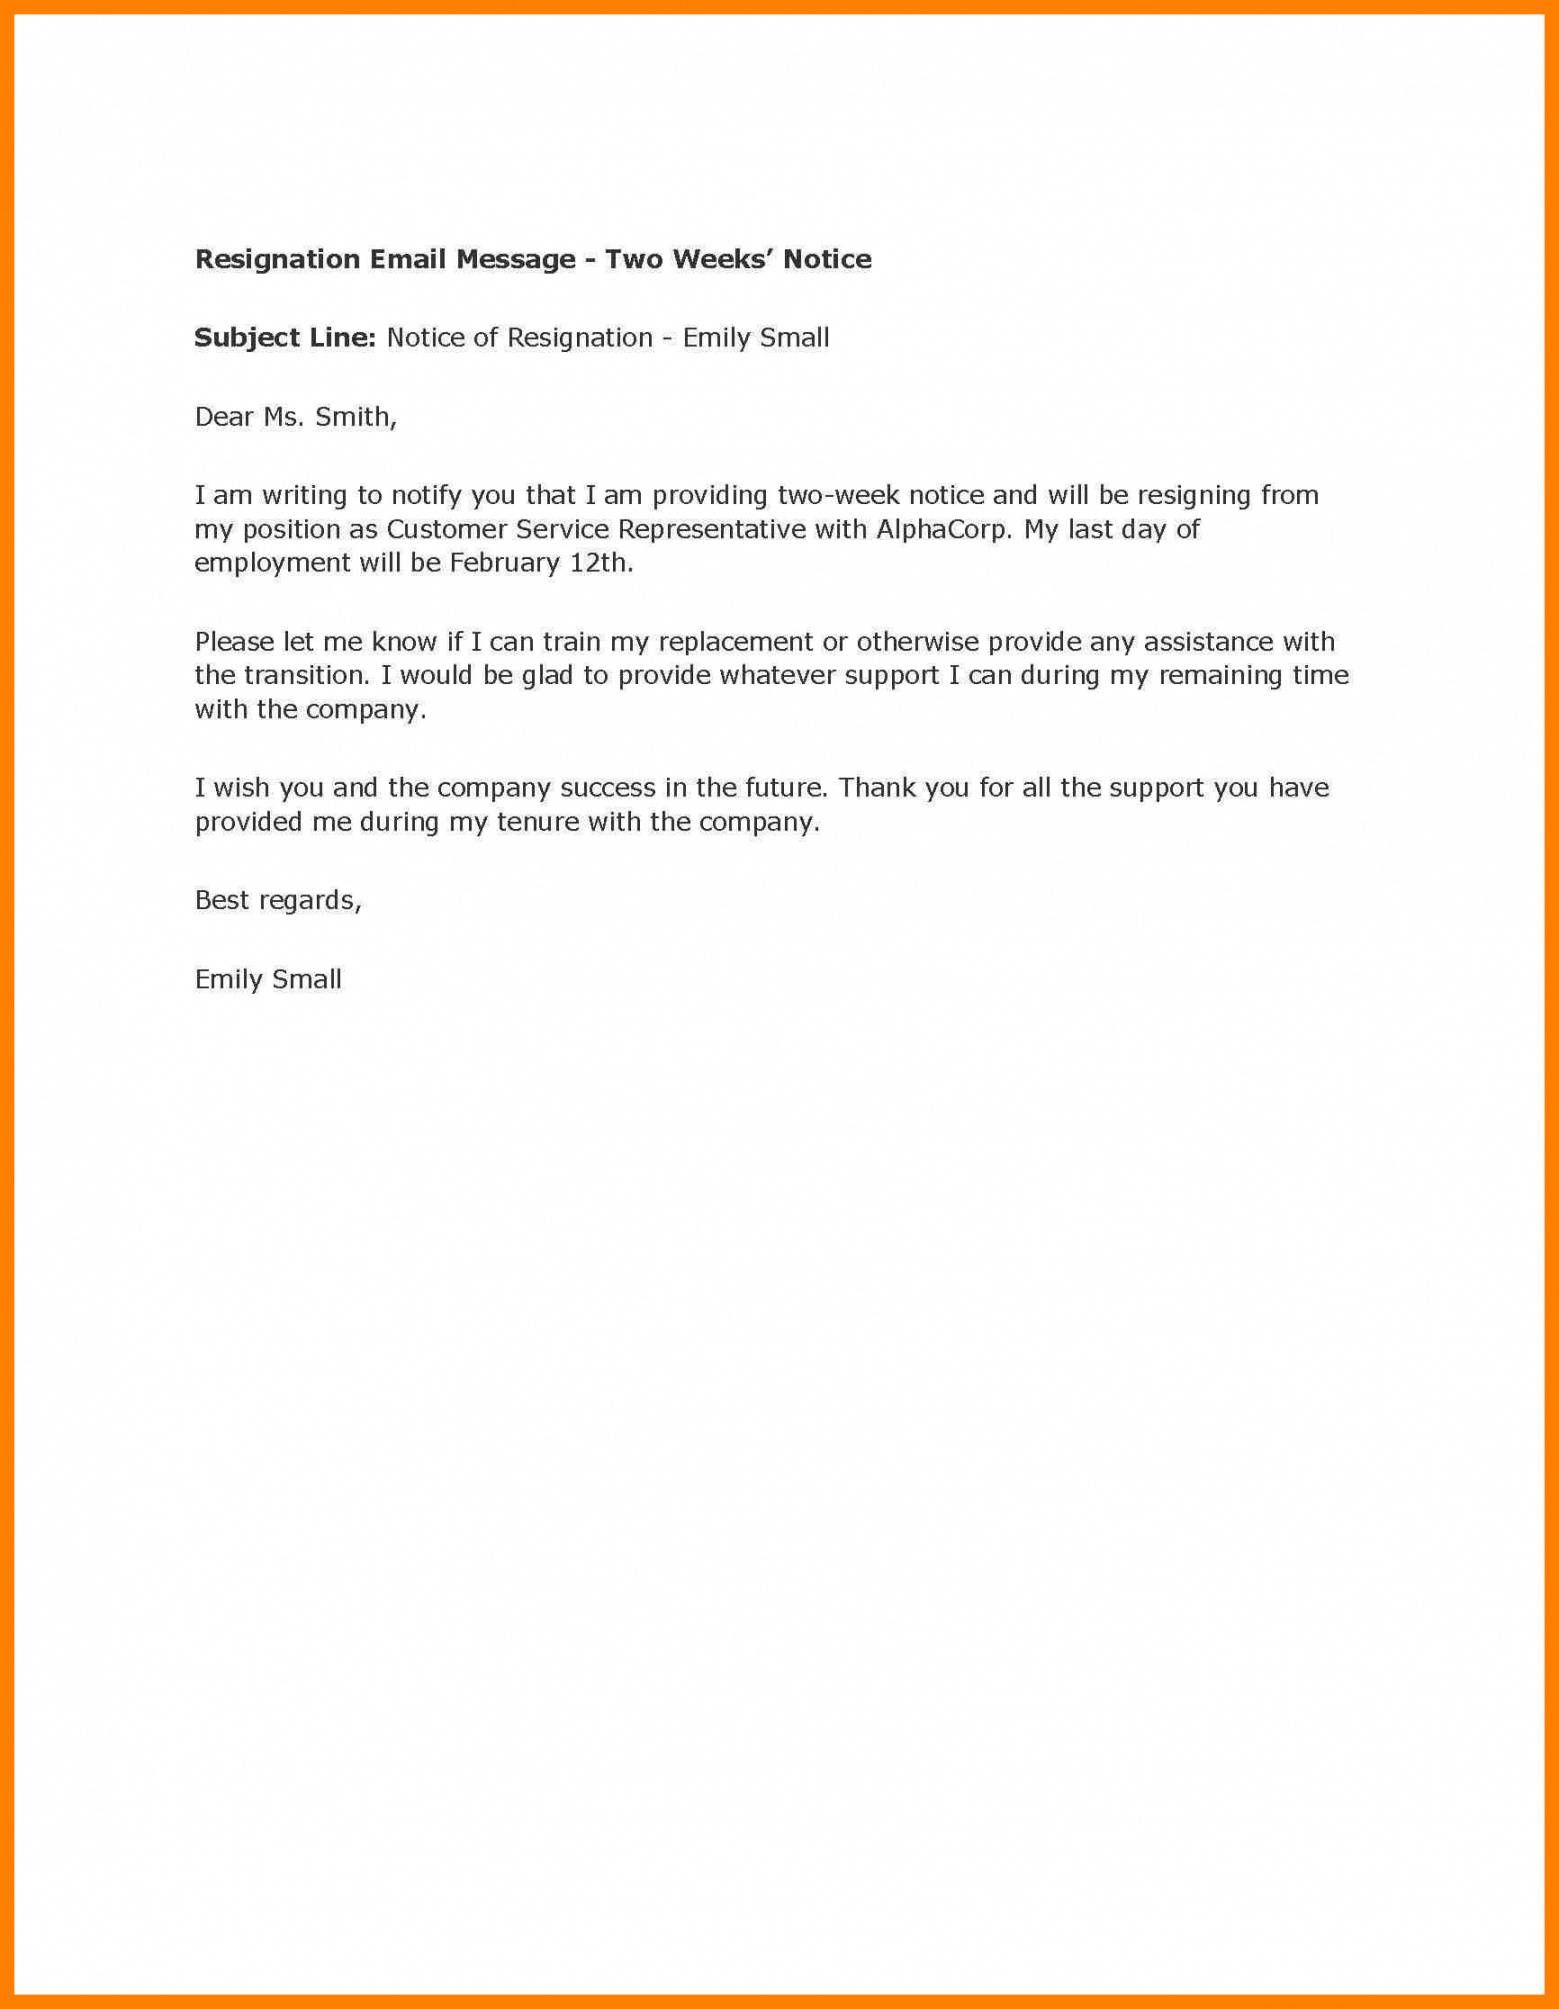 Two Week Resignation Letter Best Of Resignation Letter Sample 2 Weeks Notice Google Search Resignation Letter Resignation Letters Resignation Letter Sample